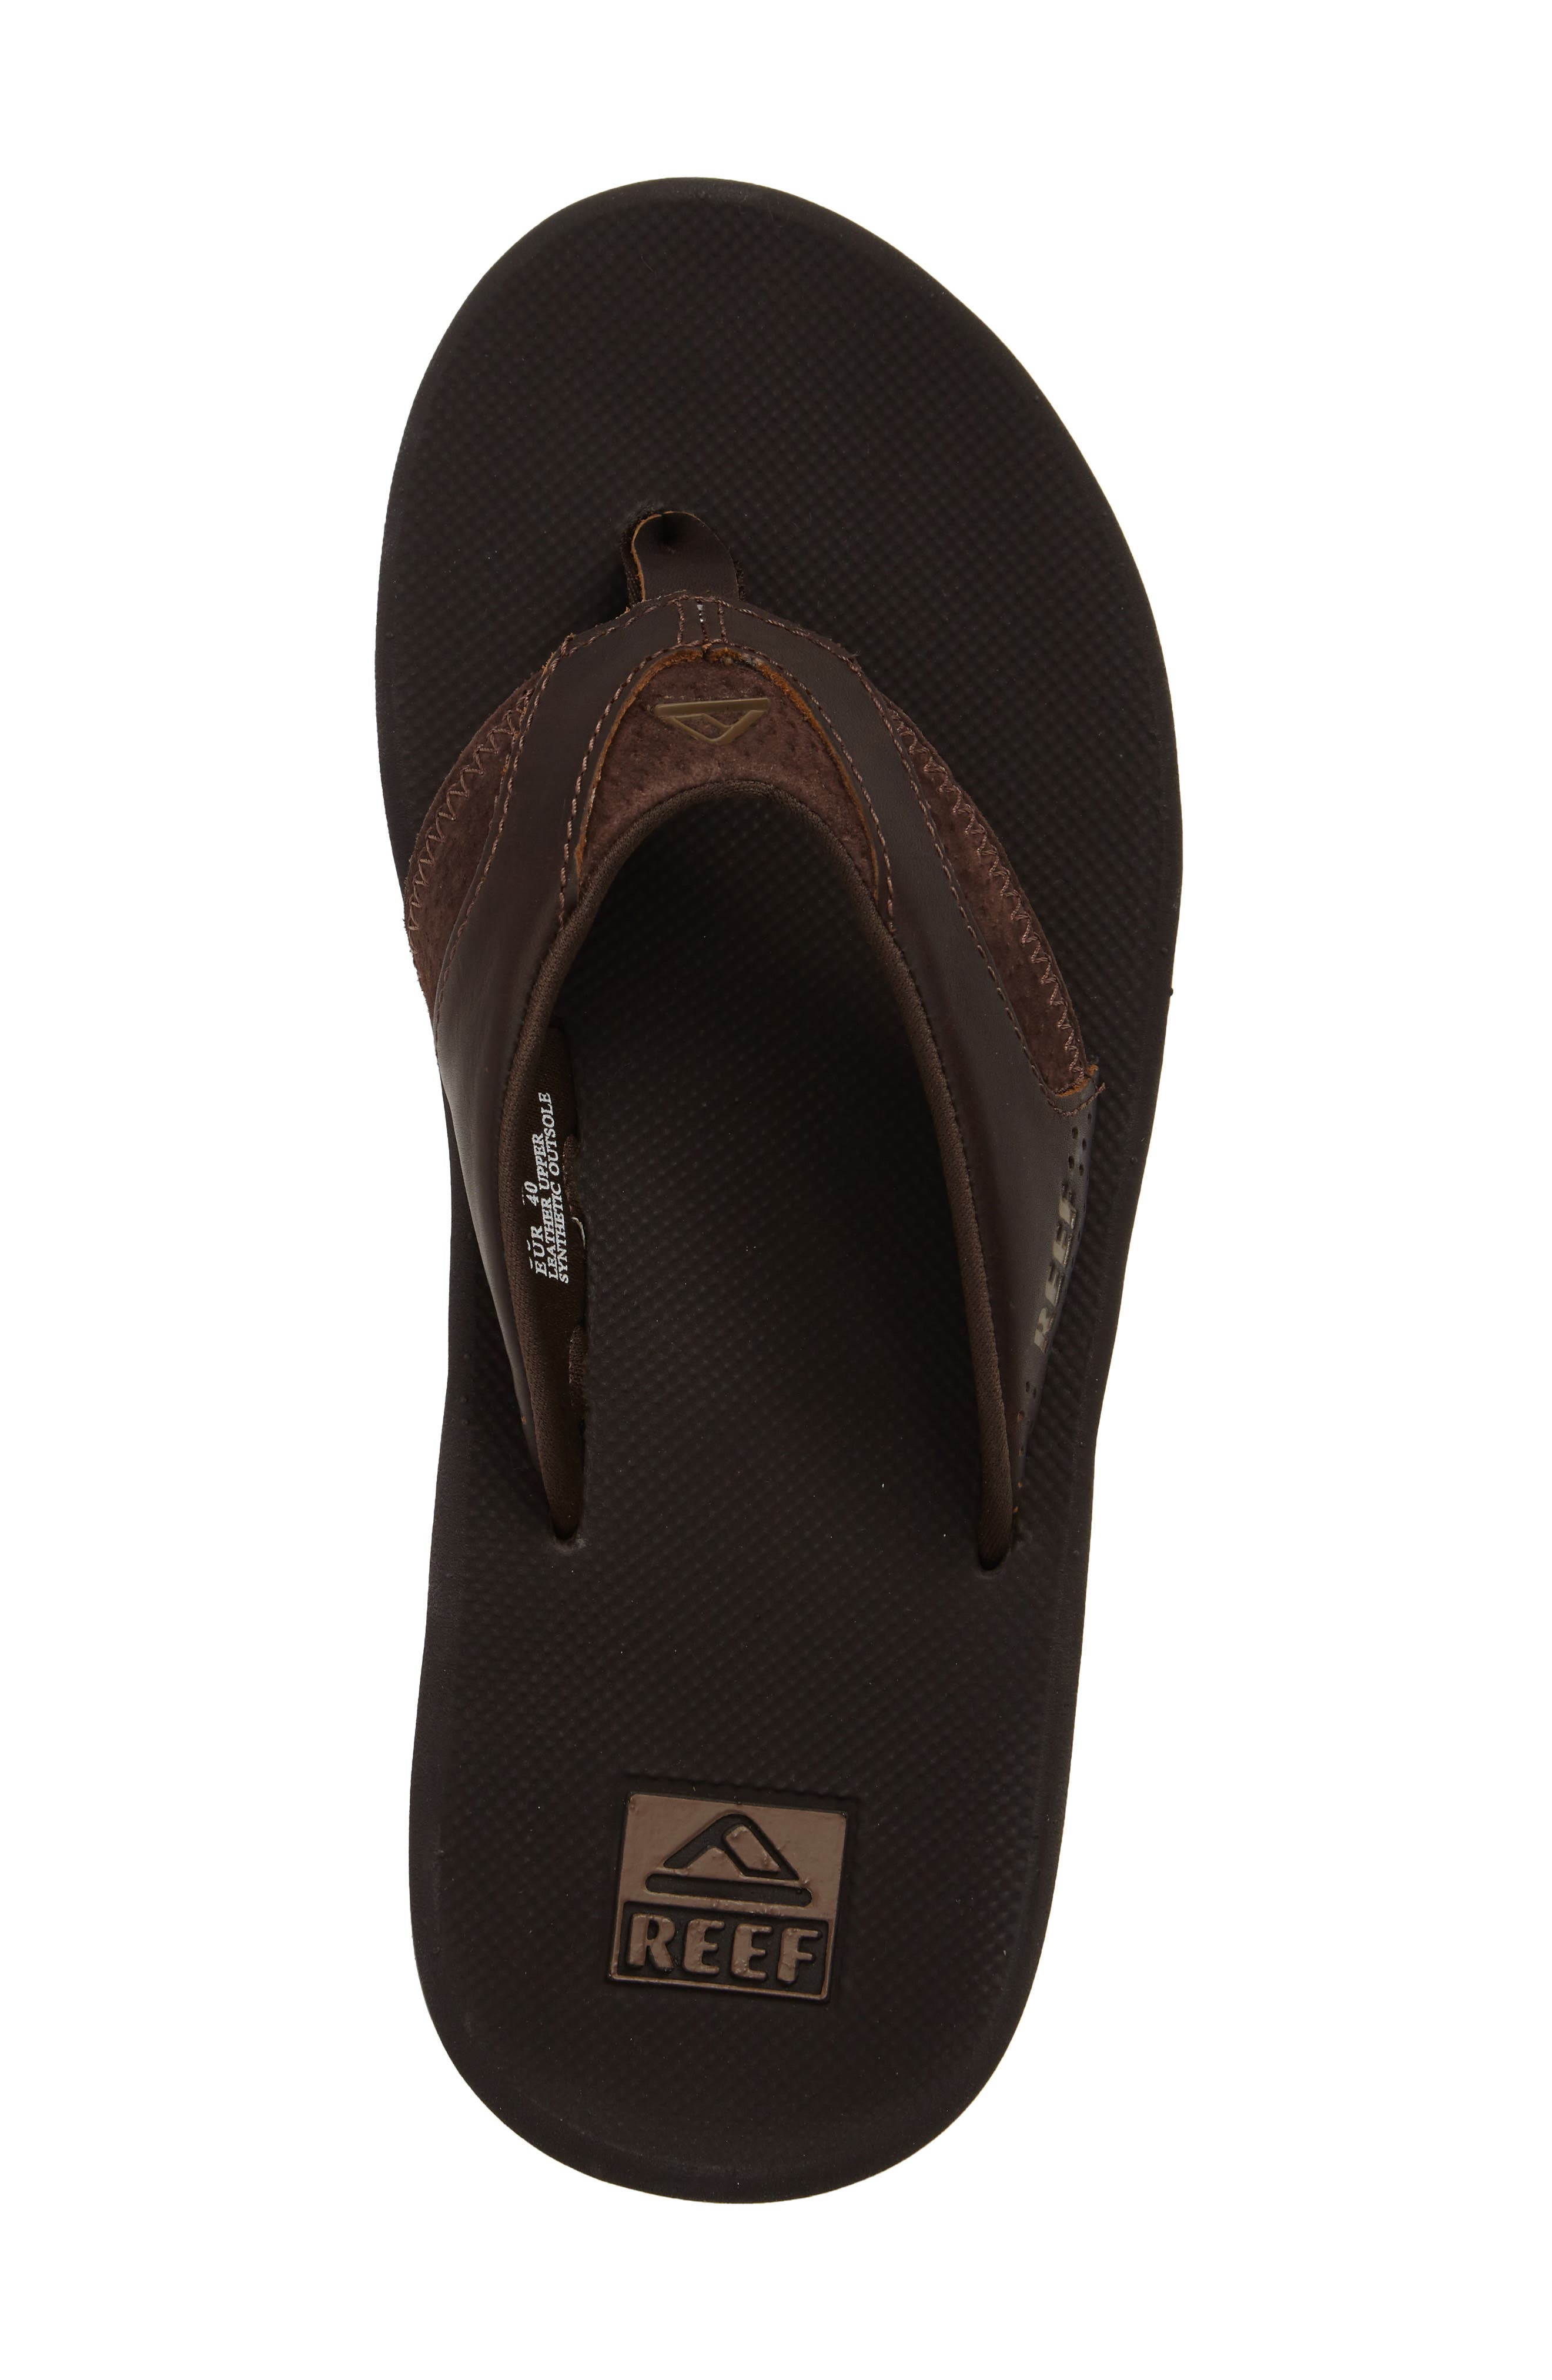 REEF, 'Fanning Leather' Flip Flop, Alternate thumbnail 5, color, BROWN LEATHER